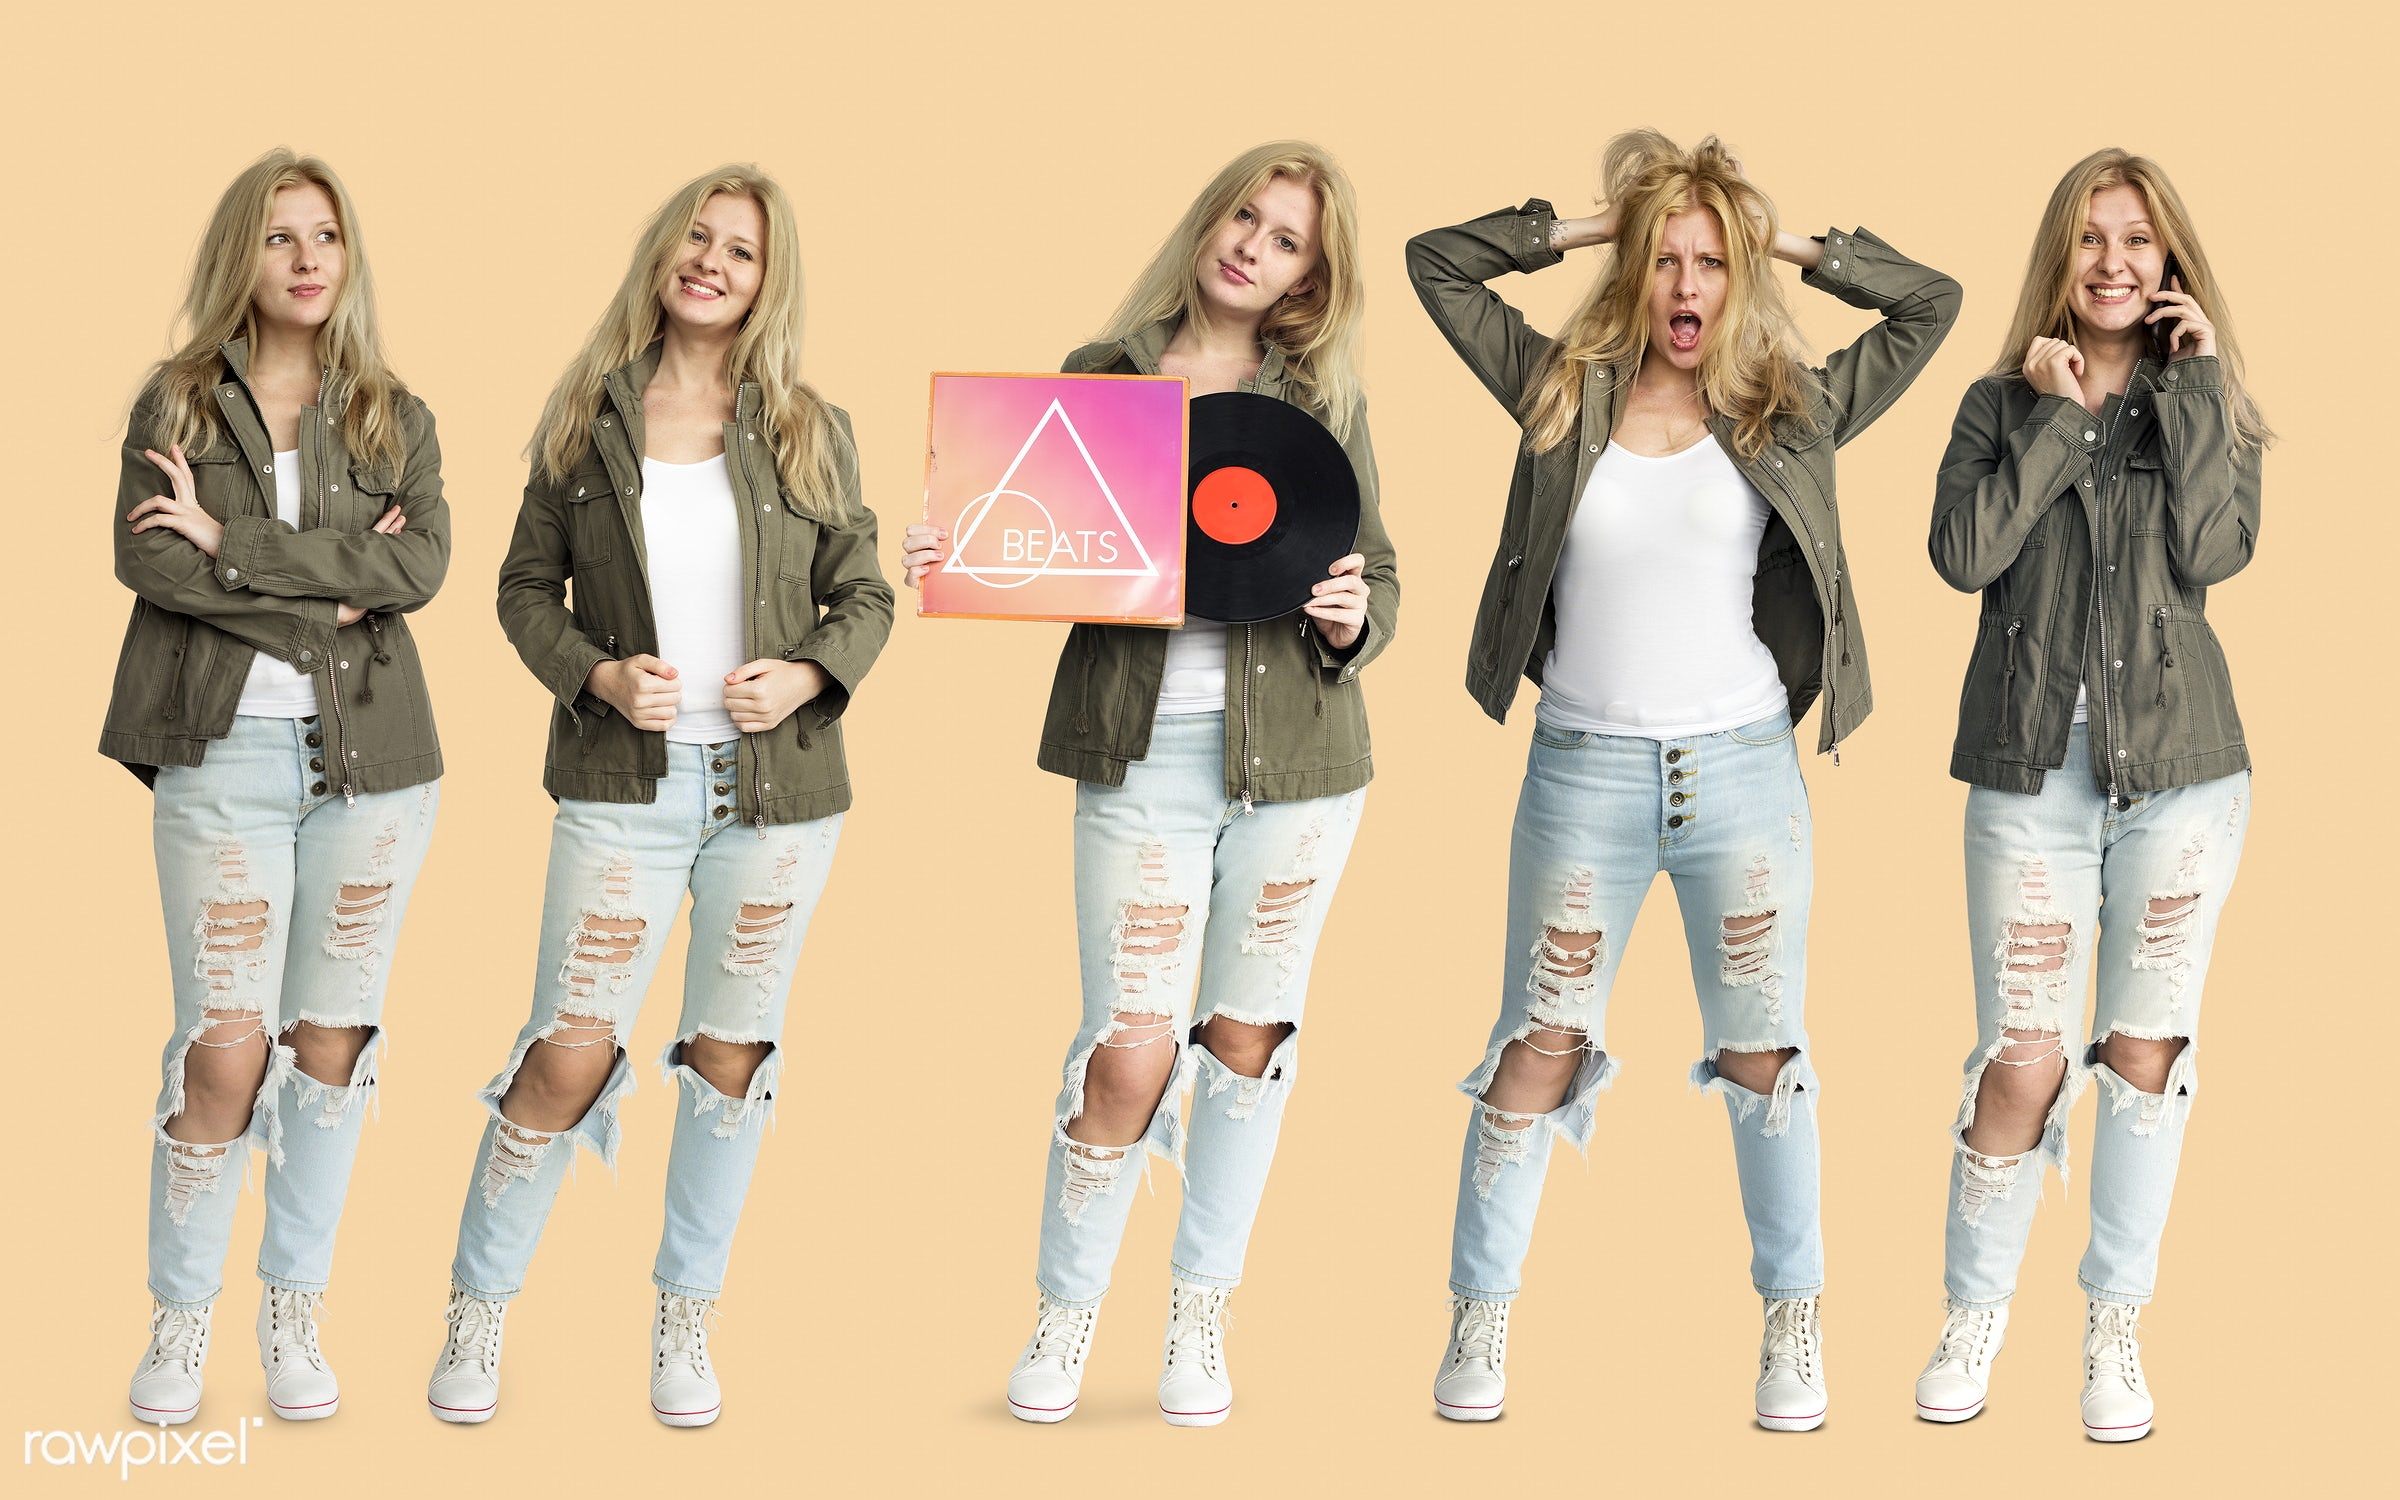 studio, expression, person, diverse, entertain, race, people, attraction, together, disc, caucasian, young adult, woman,...